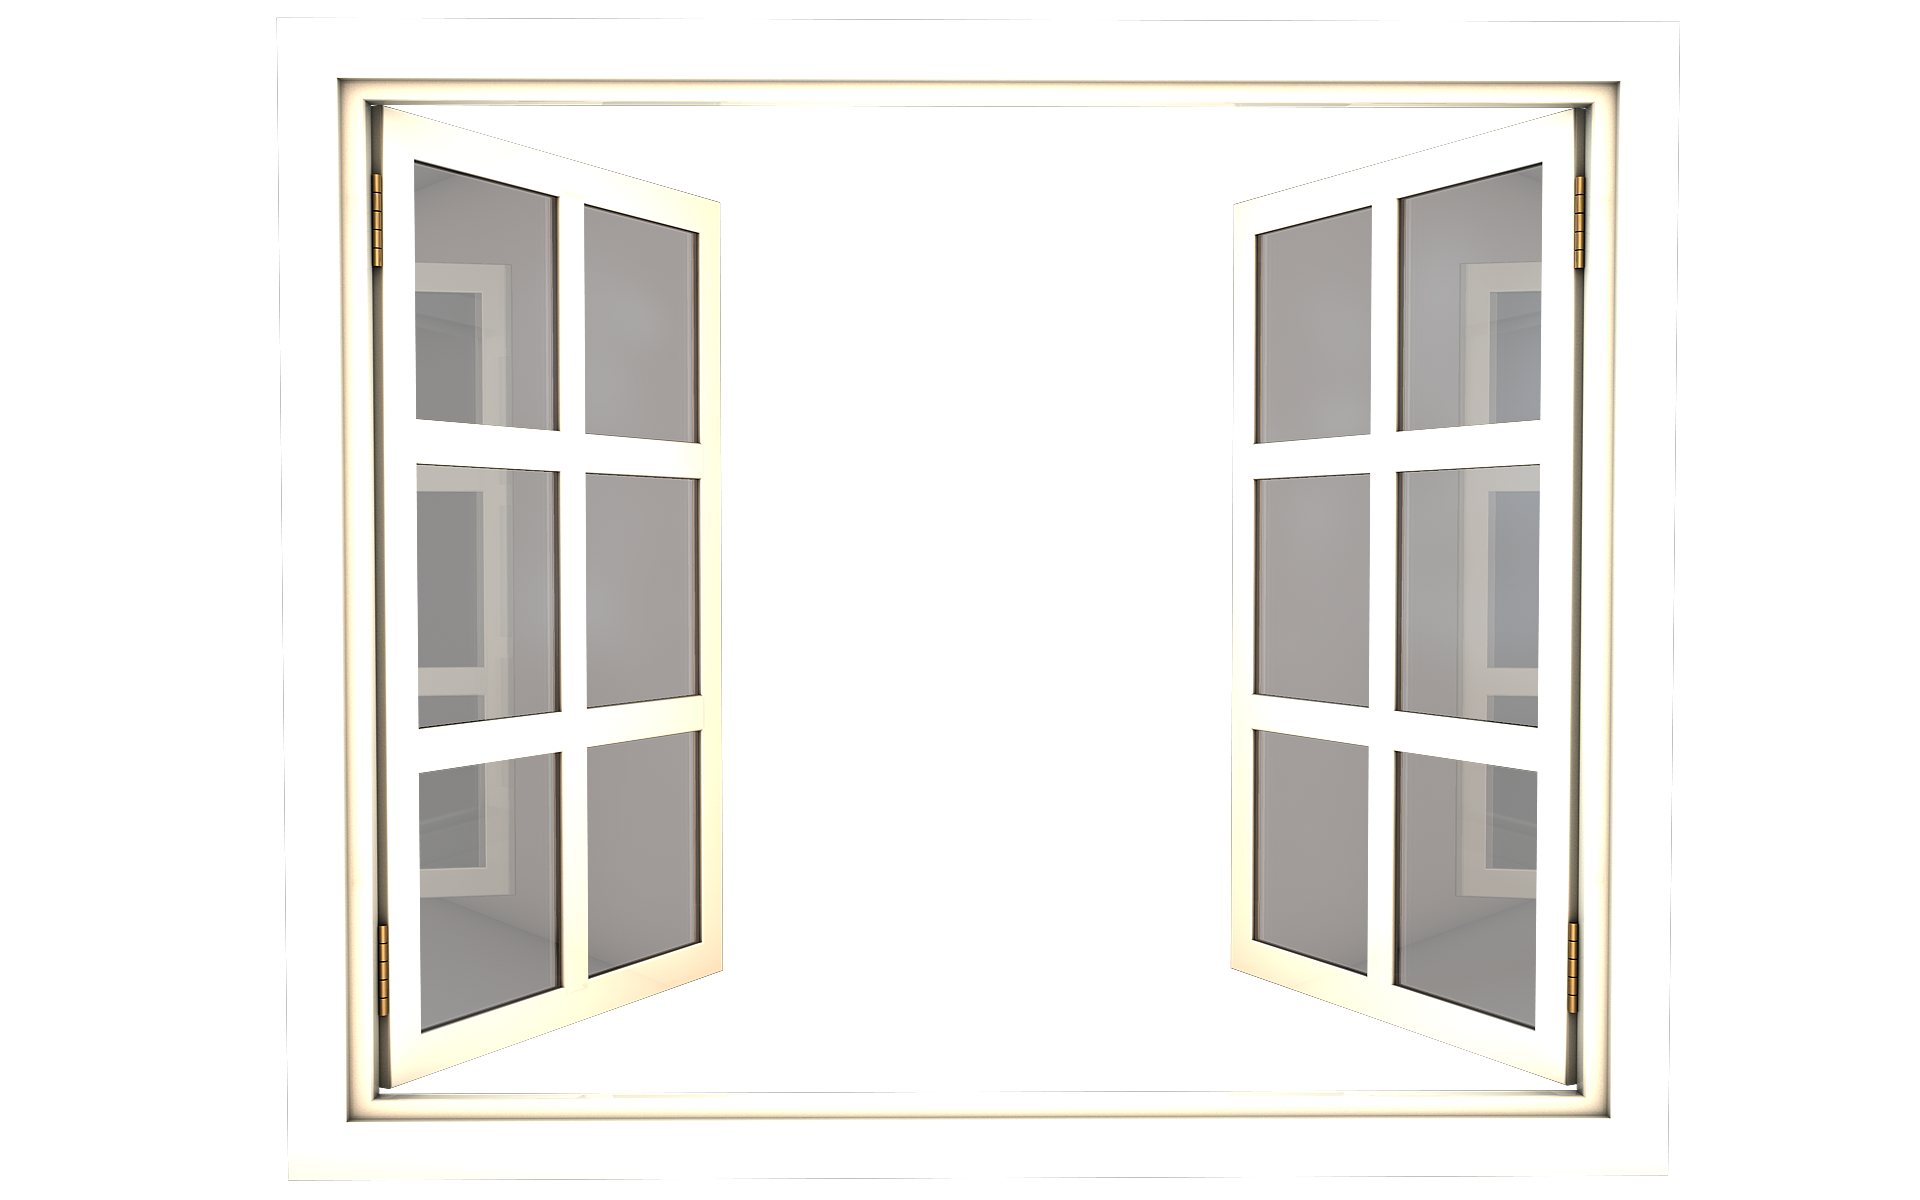 Windows hd png transparent windows hd png images pluspng for Window design hd image